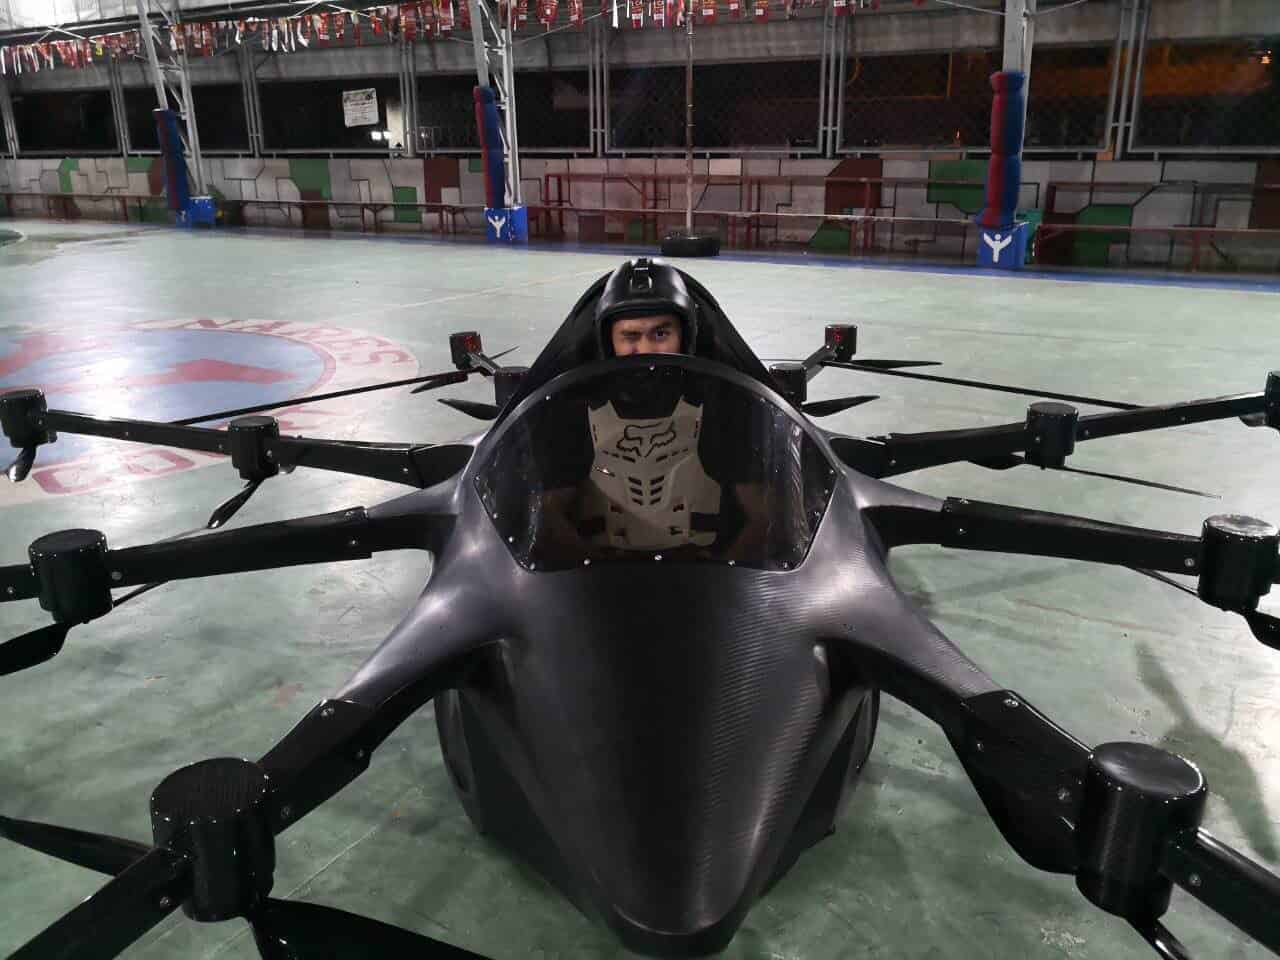 KONCEPTO MILLENYA: Filipino Inventor Channels Frustration Over Metro Manila Traffic To Create His Own Manned Drone Car